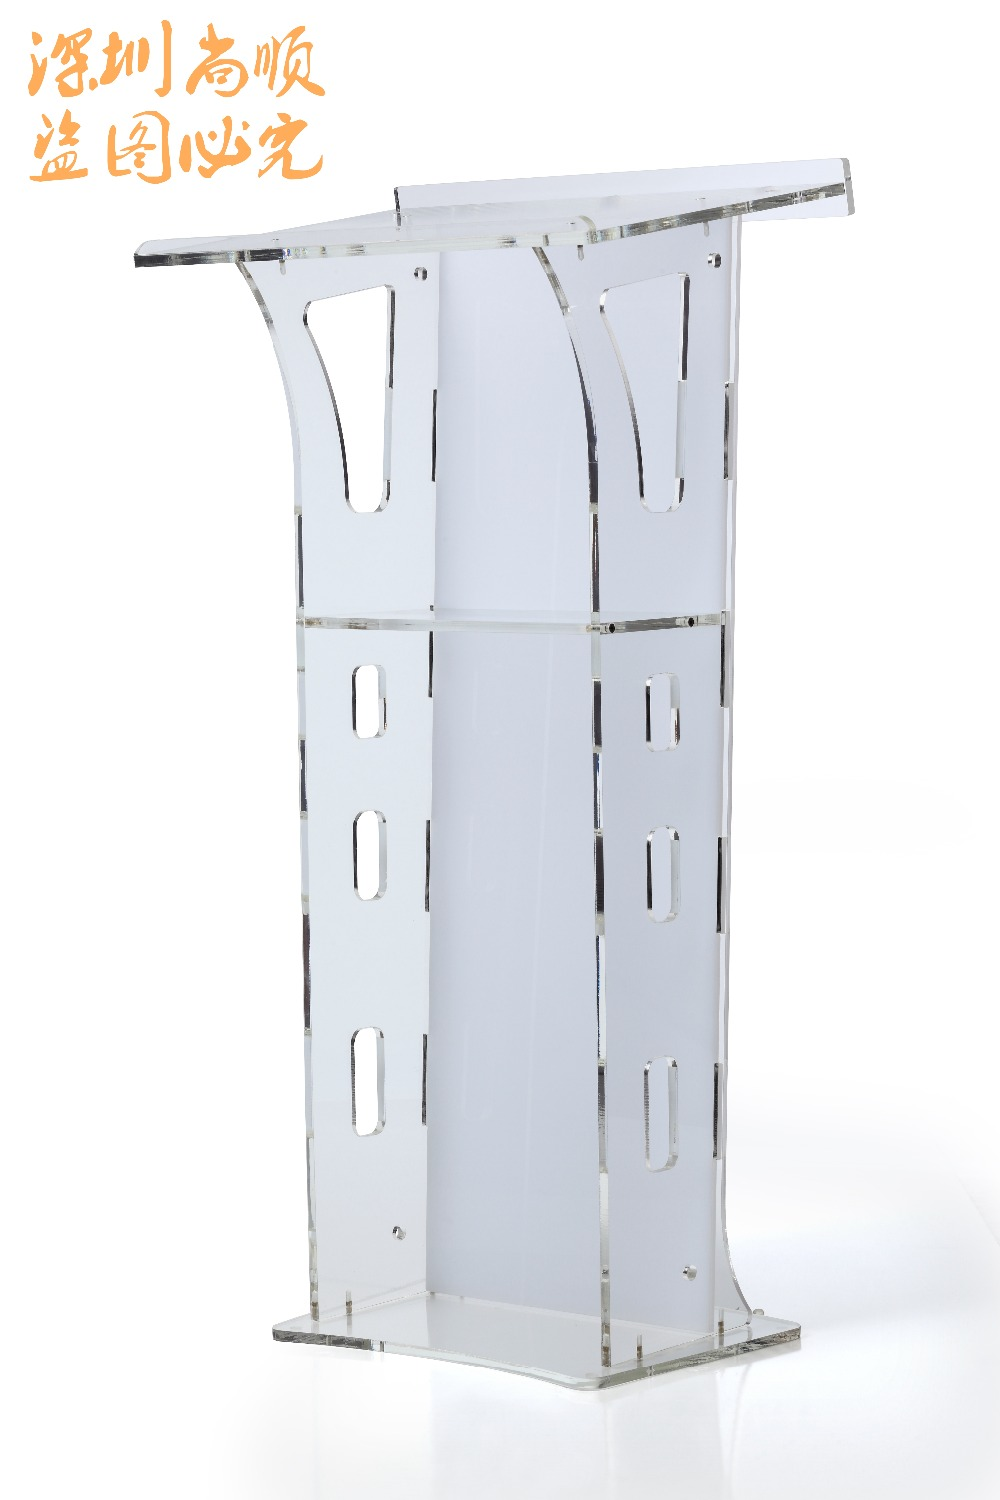 Free Shipping Truth ministries christian clear acrylic lectern cheap church podium free shiping cheap clear acrylic lectern